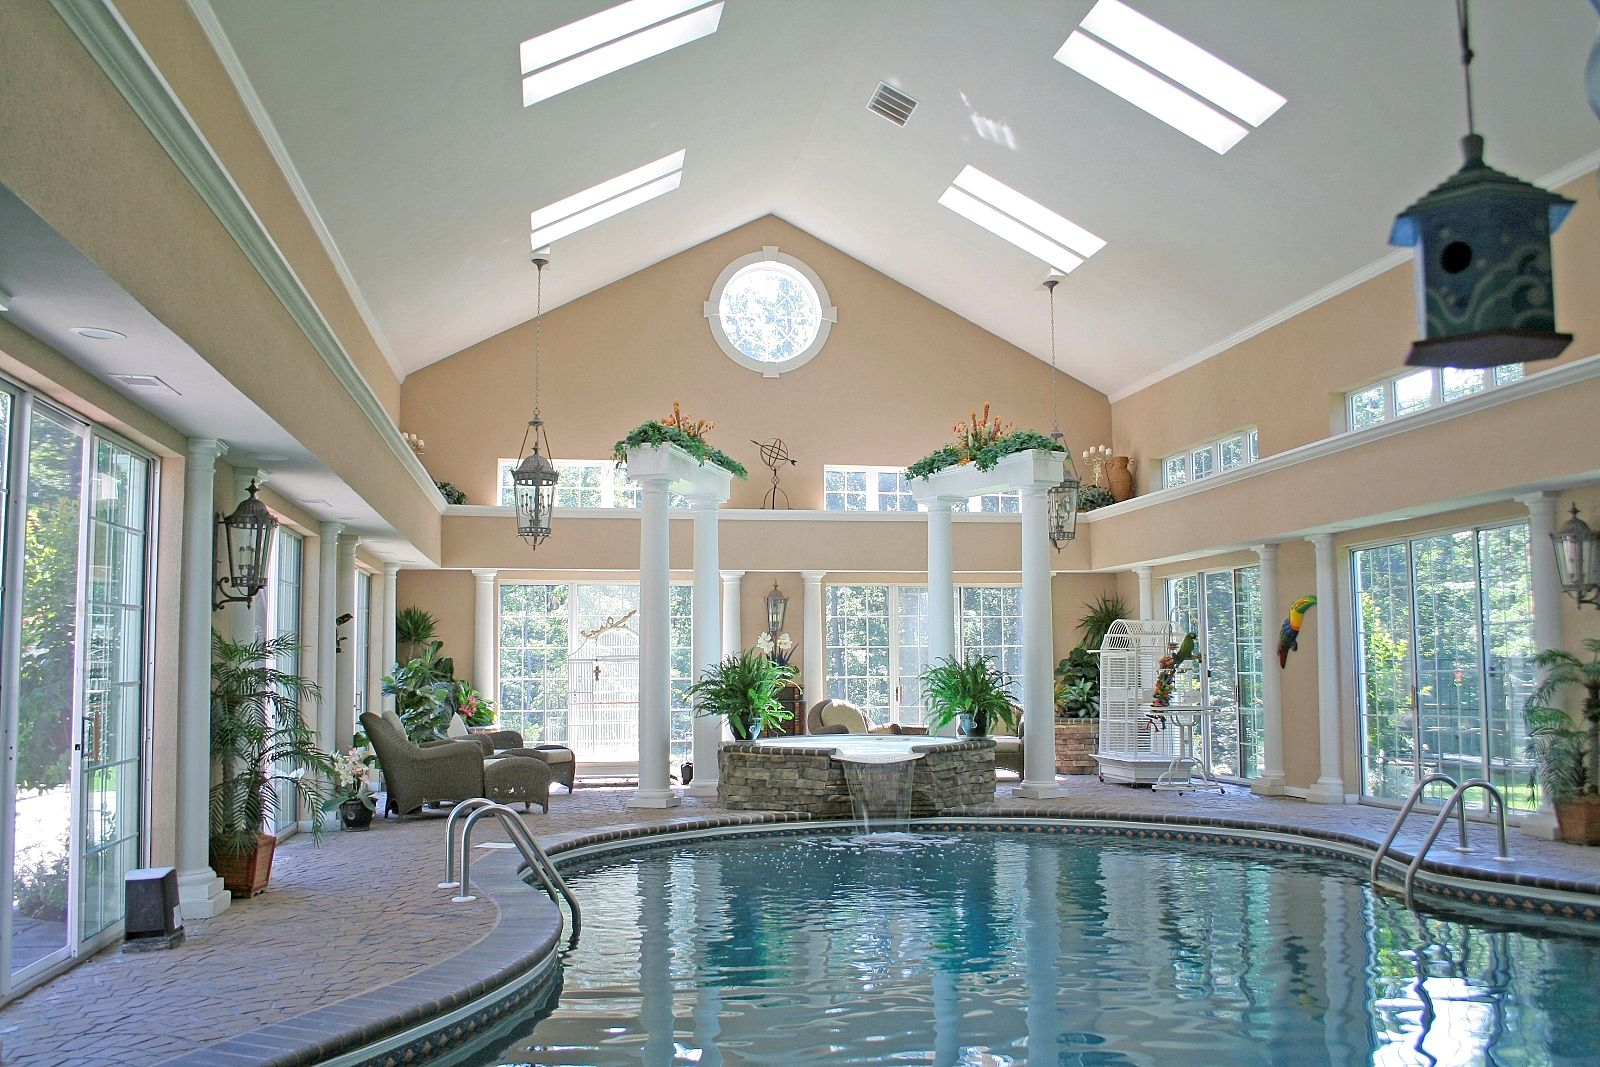 Gallery Swimming pool house, Inside pool, Indoor pool